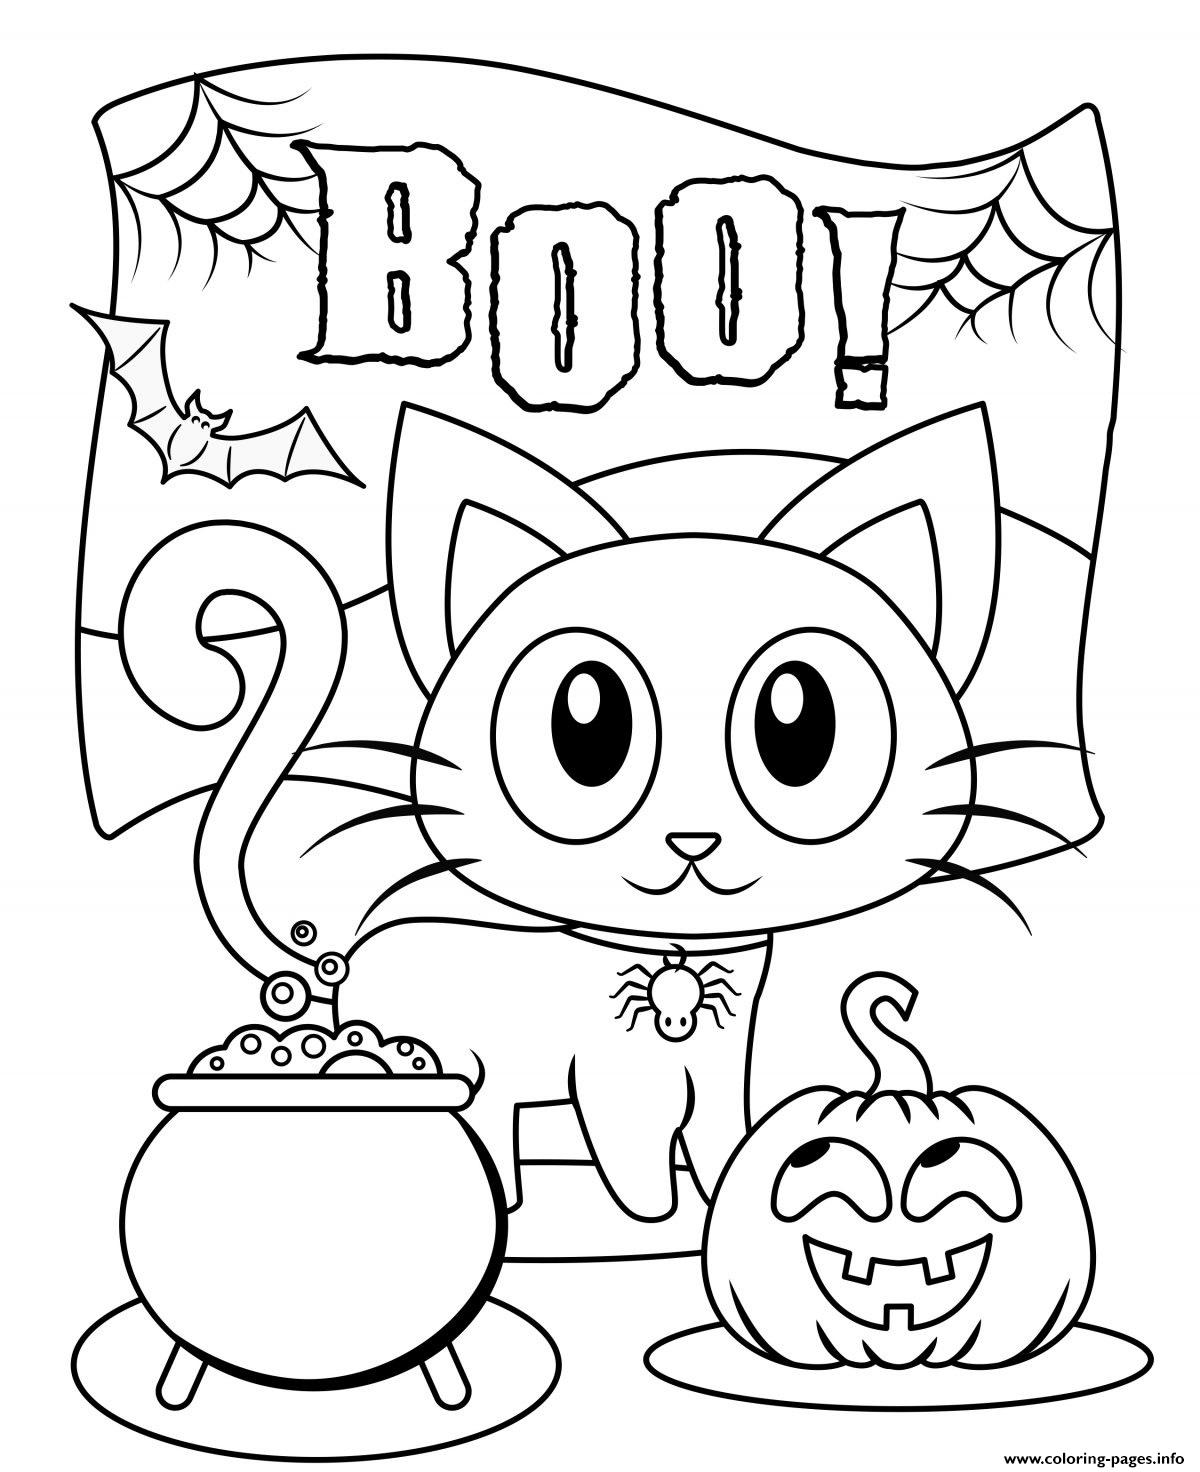 Halloween Boo Cat Cute Kids Coloring Pages Printable